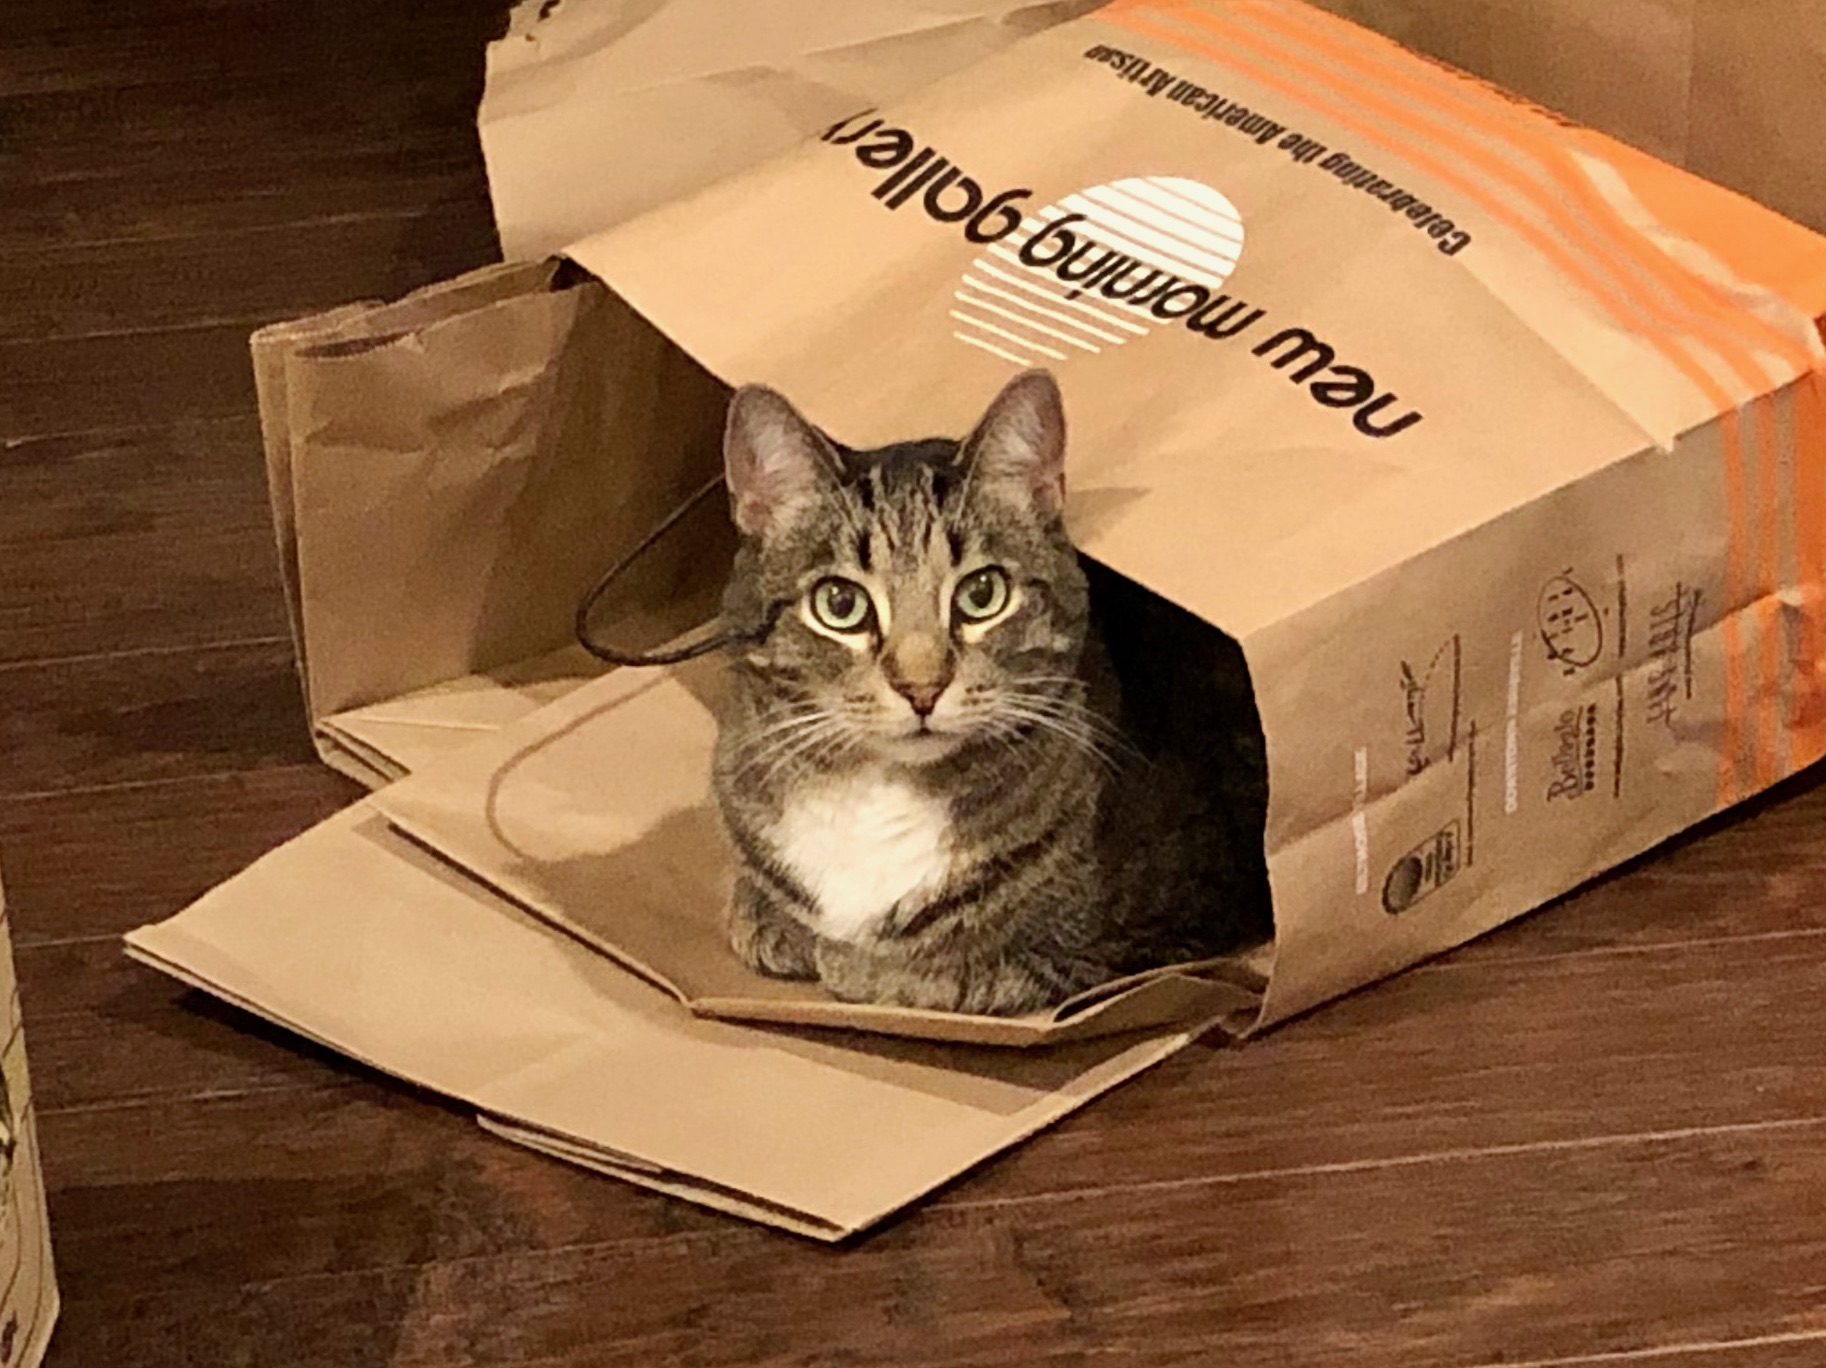 Haku sitting comfortably in a paper bag